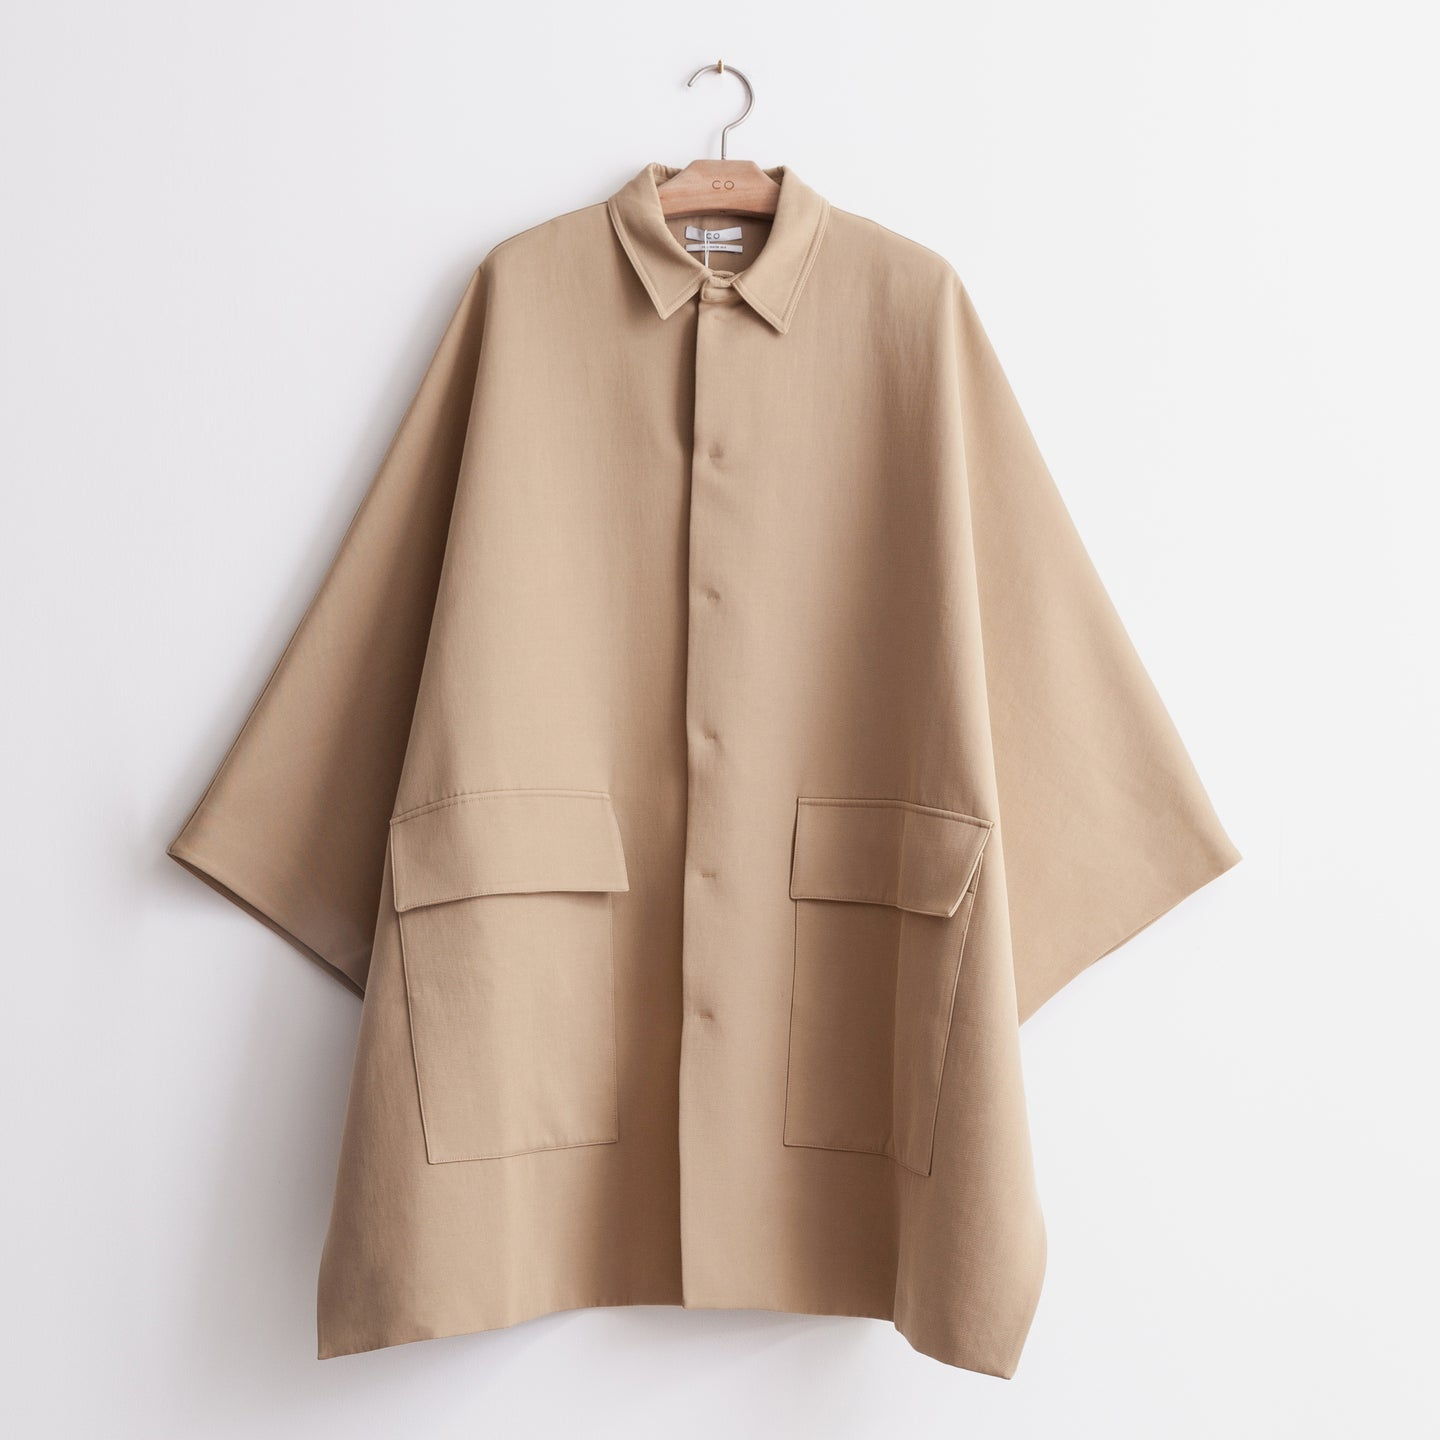 CO - Snap front collared poncho in tan bonded cotton twill